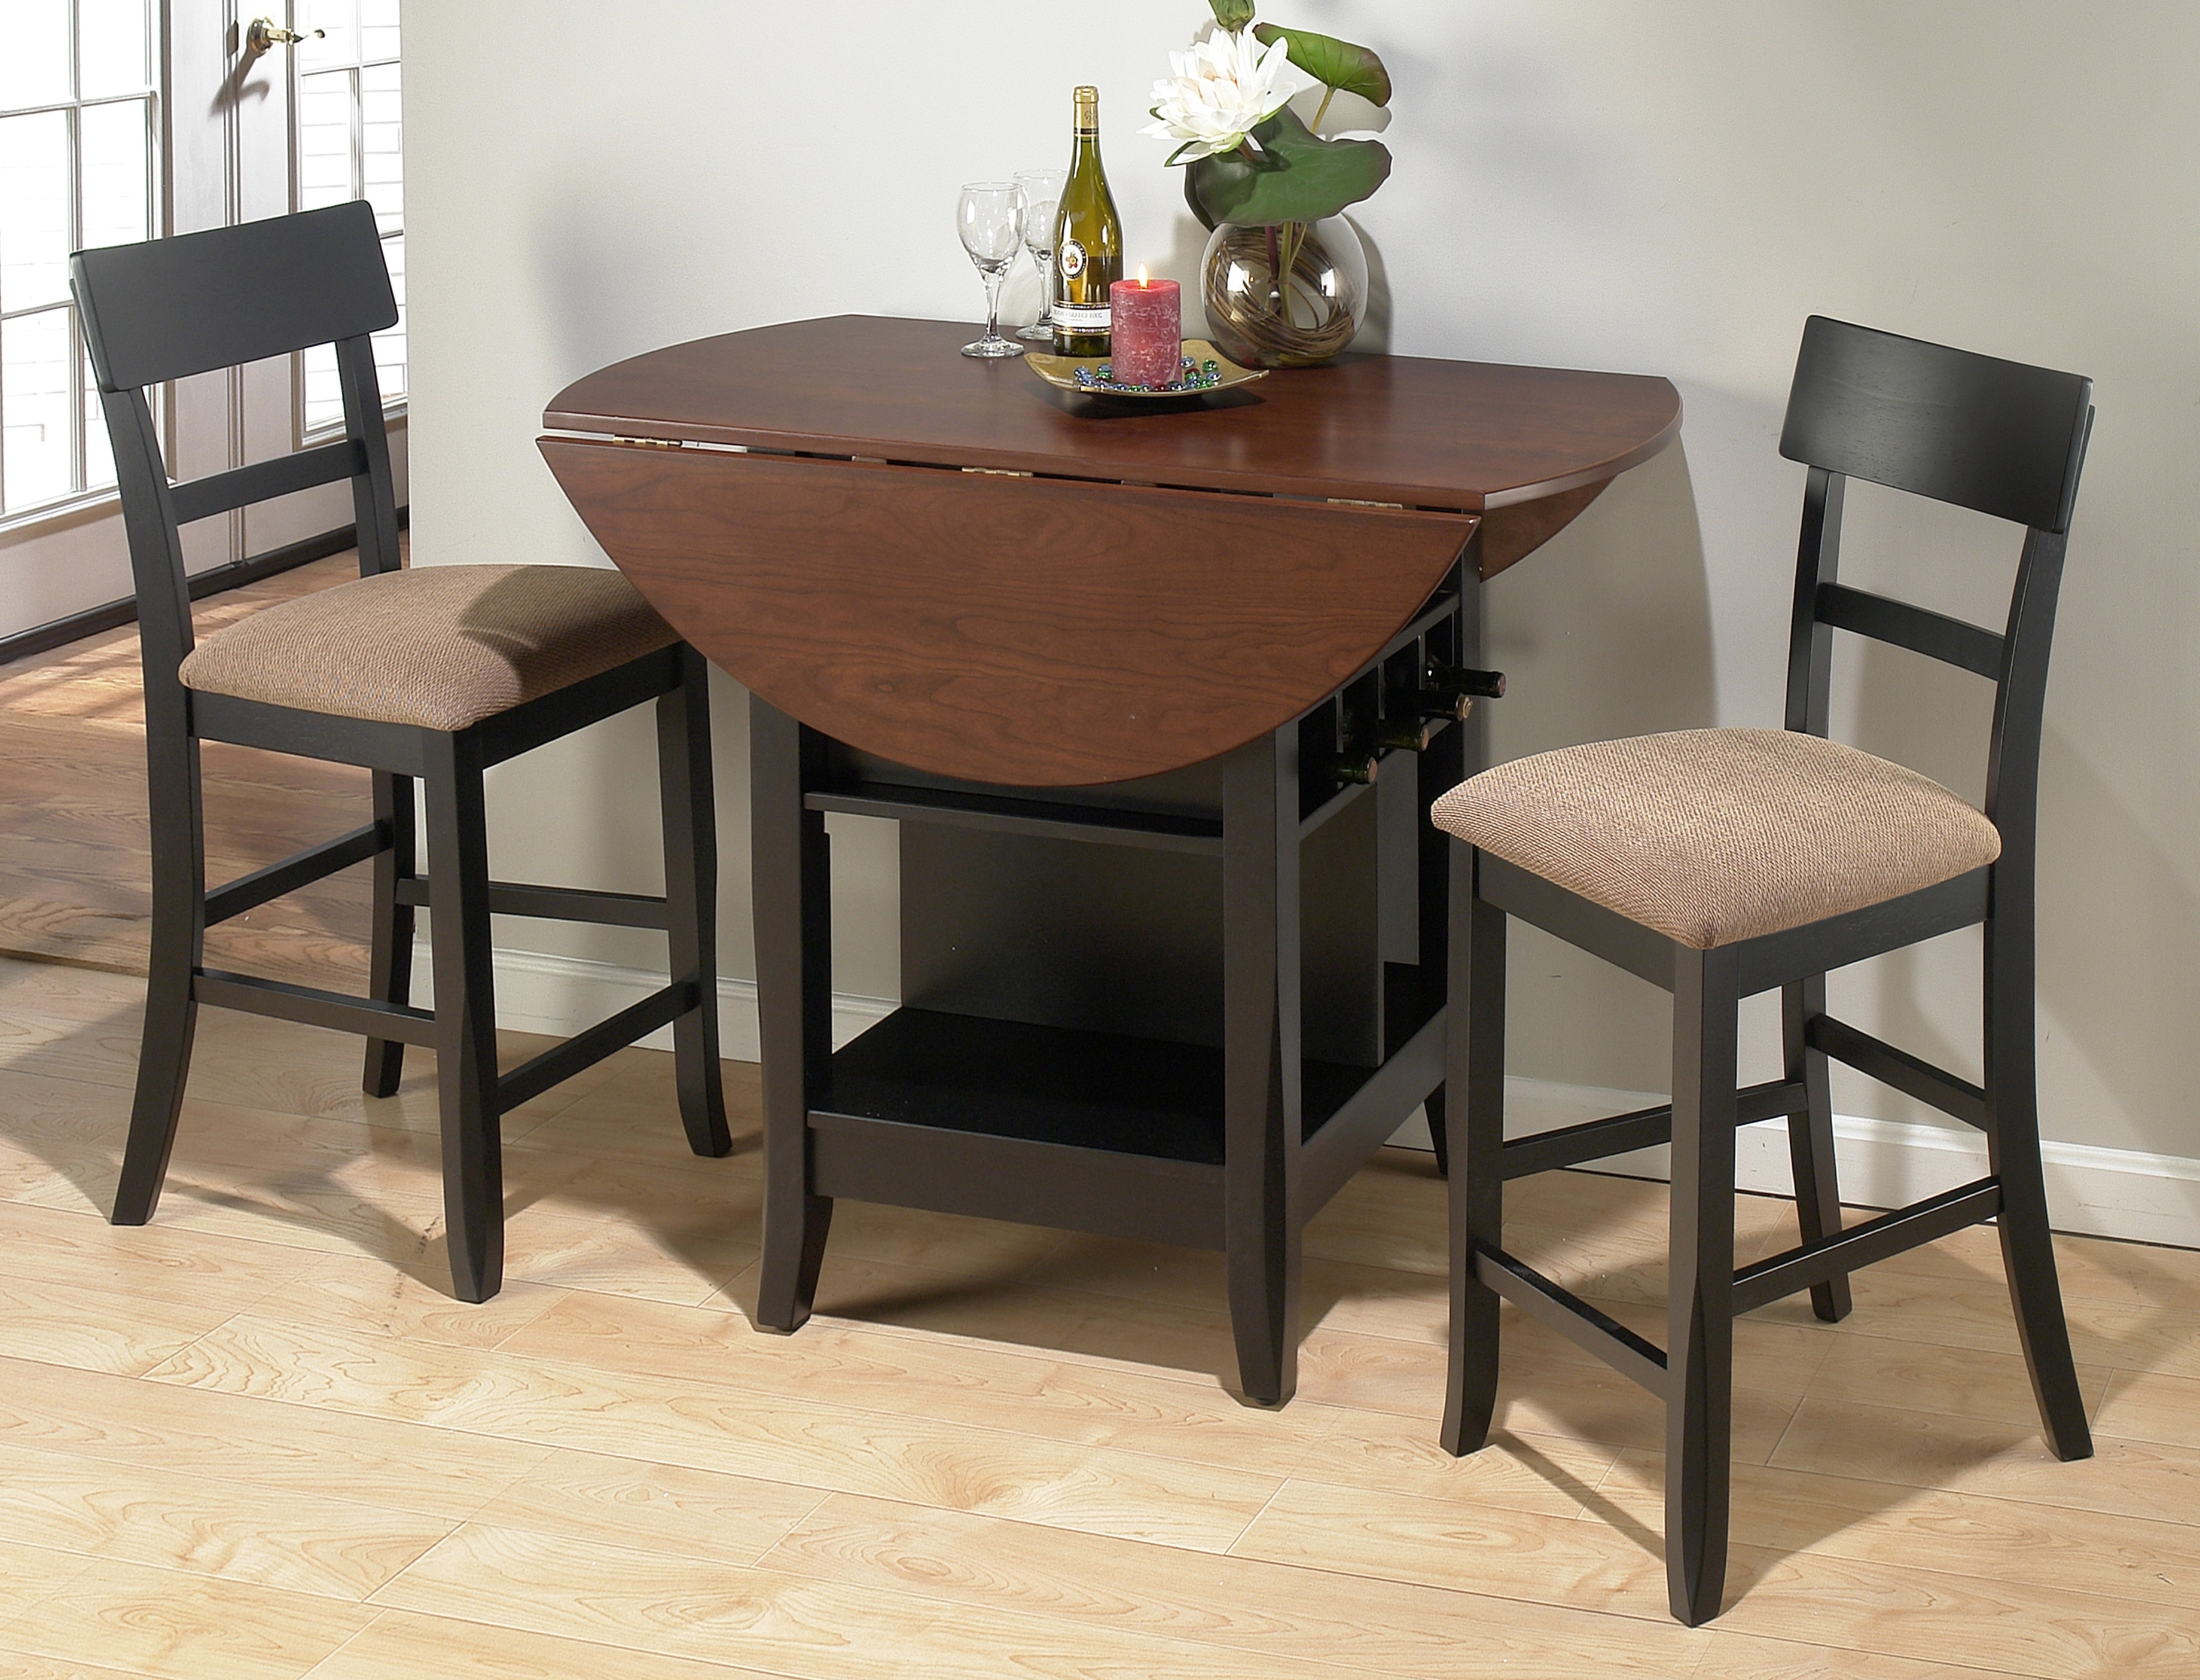 Trendy Dining Room Small Dining Table Designs Kitchen Dining Sets For Small With Regard To Cheap Dining Tables And Chairs (View 21 of 25)